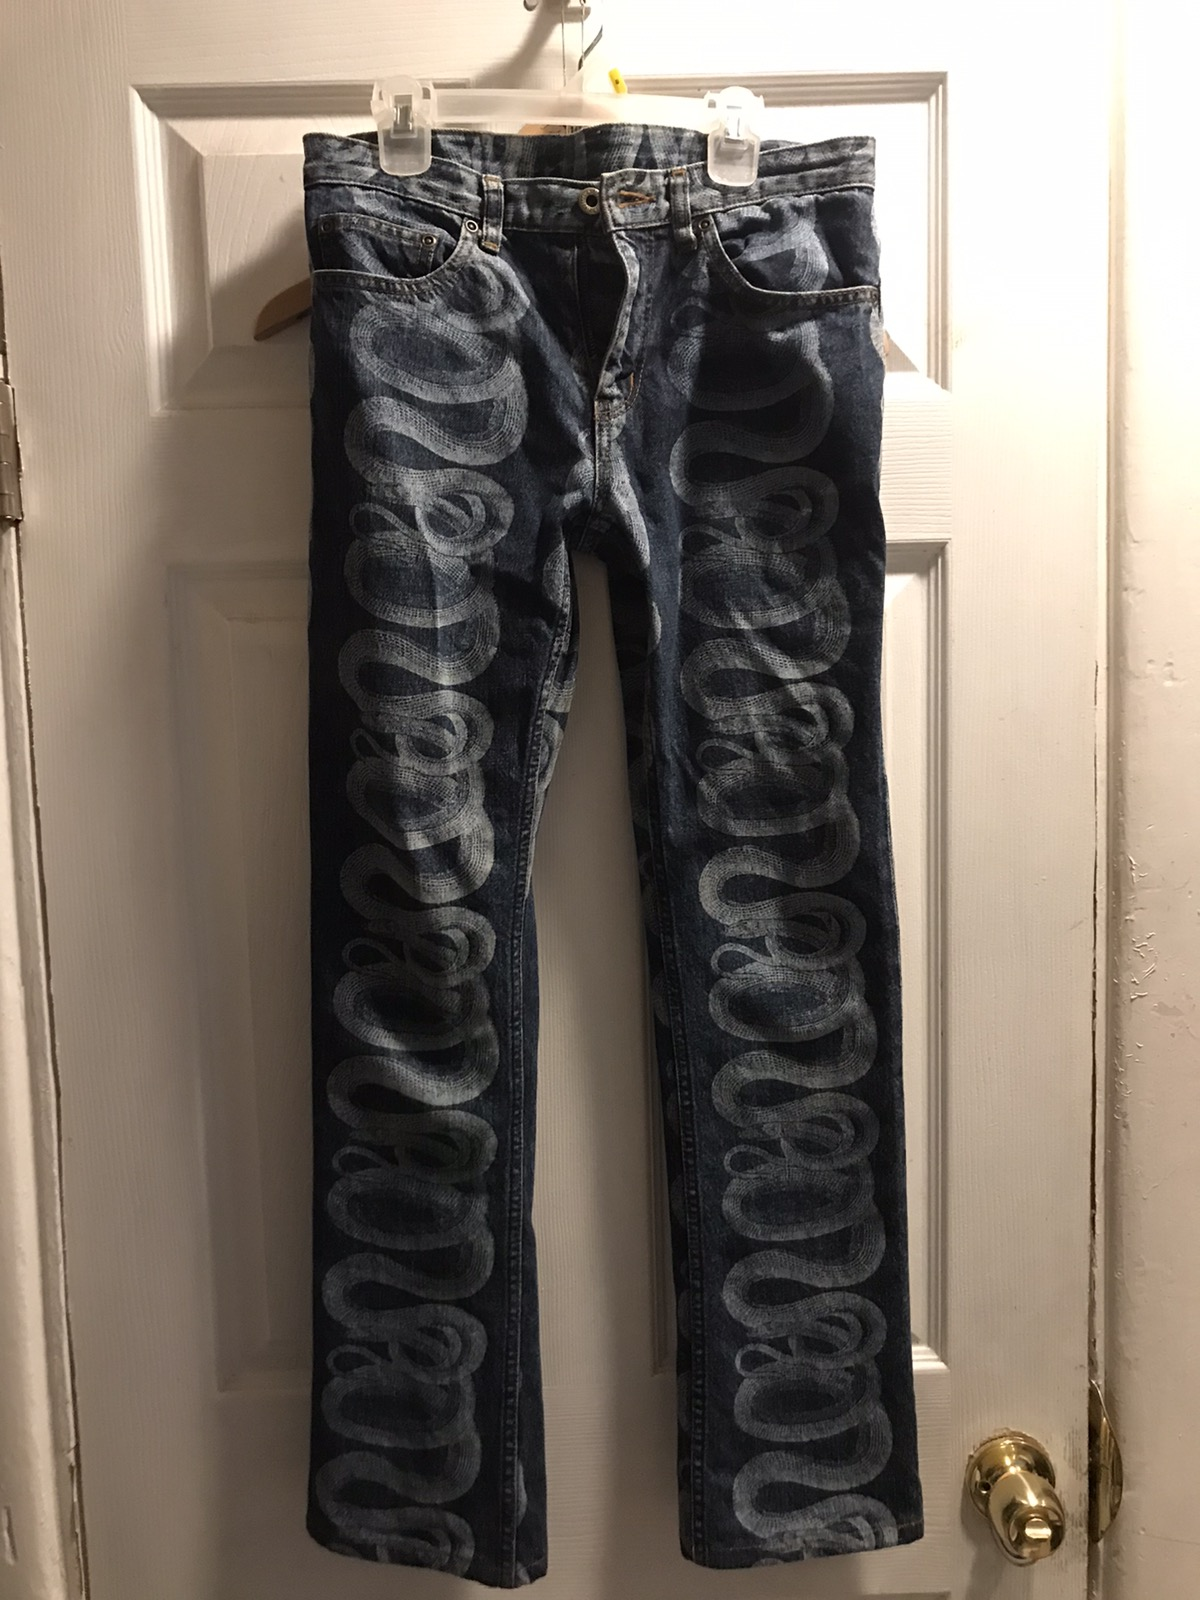 Hysteric Glamour Hysteric Glamour Snake Denim *final Price Drop